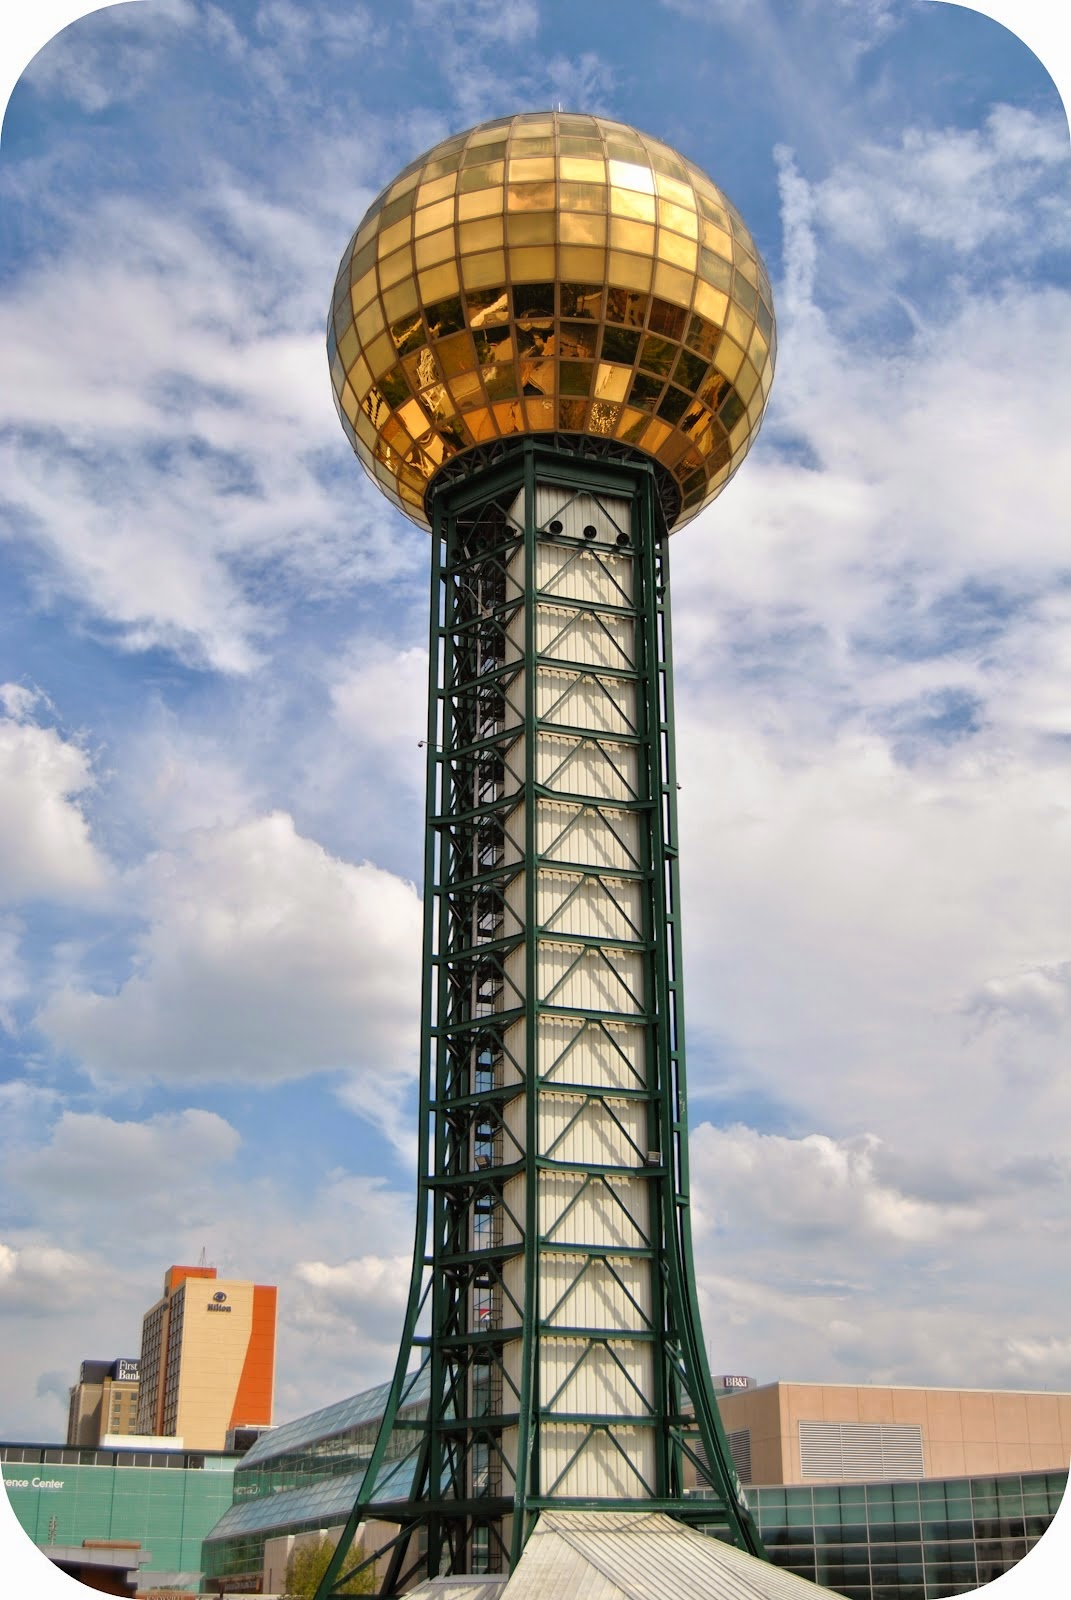 Knoxville TN sunsphere World's Fair architectural tower